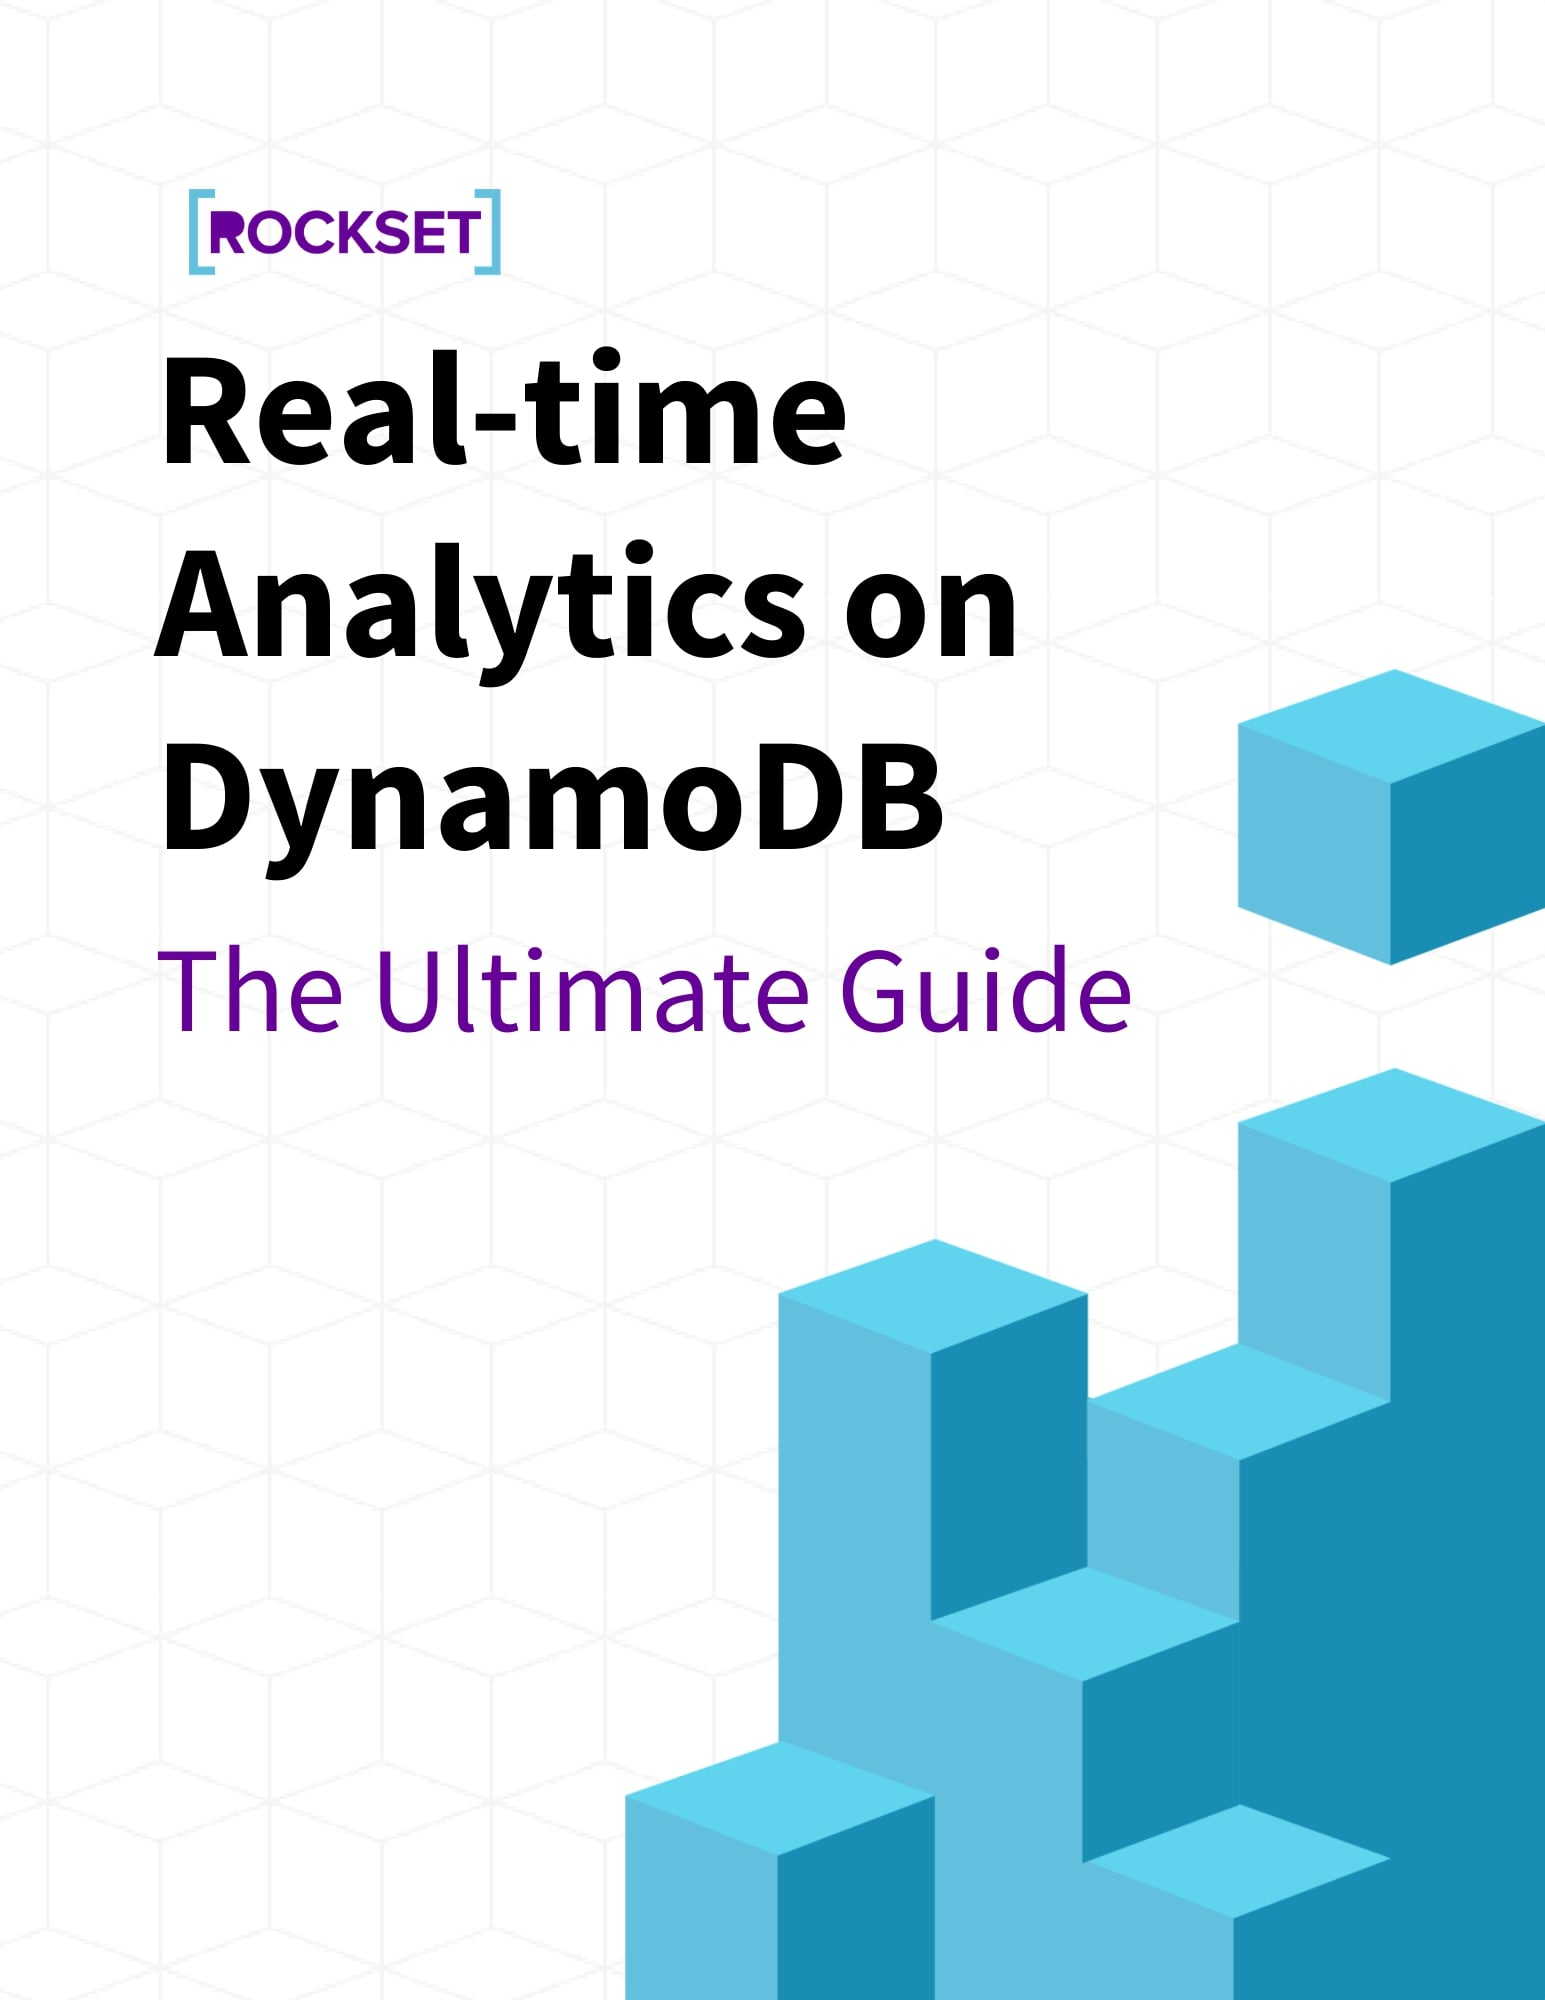 The Ultimate Guide to Real-Time Analytics on DynamoDB